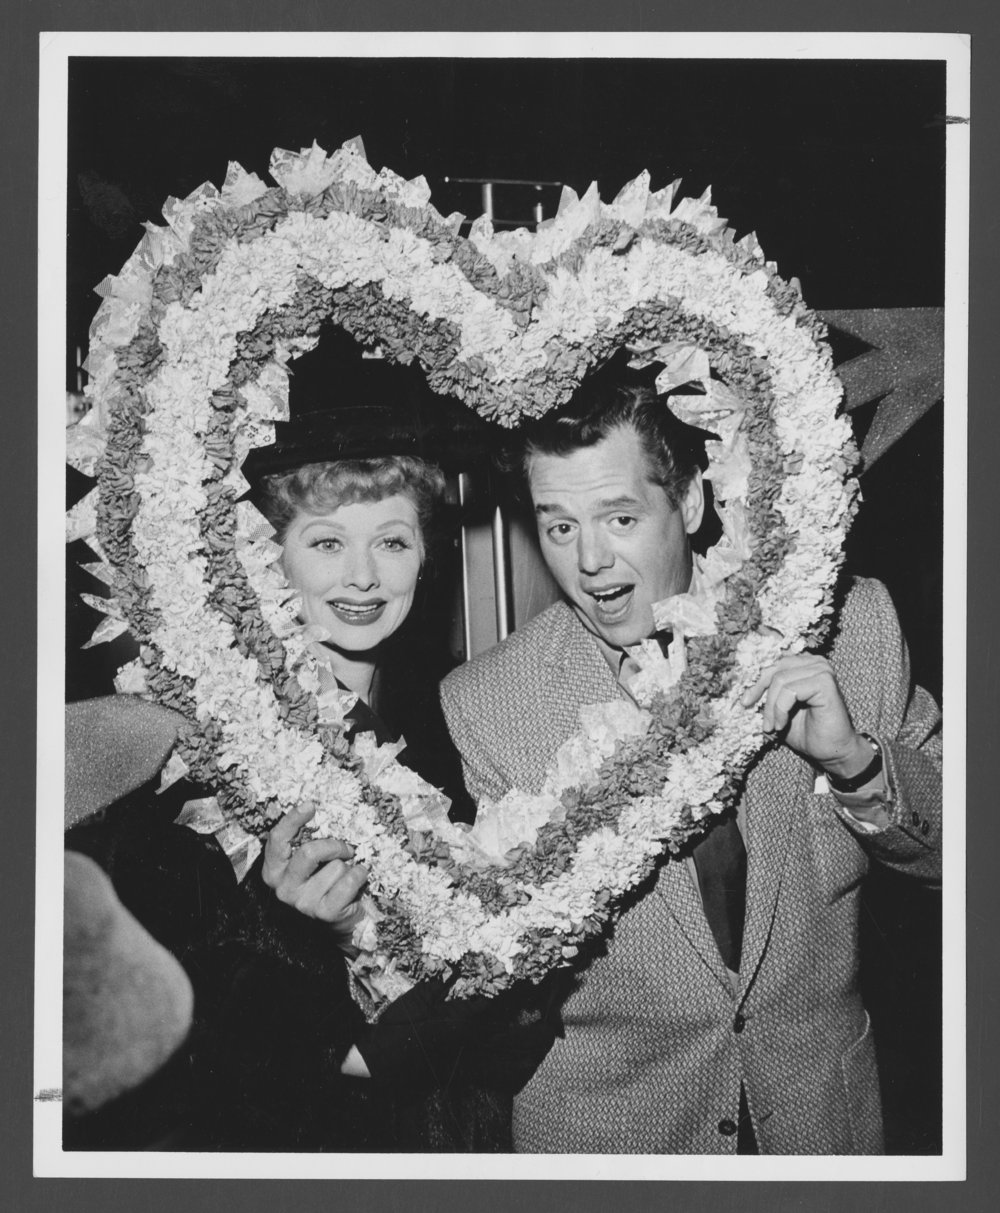 Atchison, Topeka & Santa Fe Railway Company's famous passengers--Lucille Ball and Desi Arnaz - 1